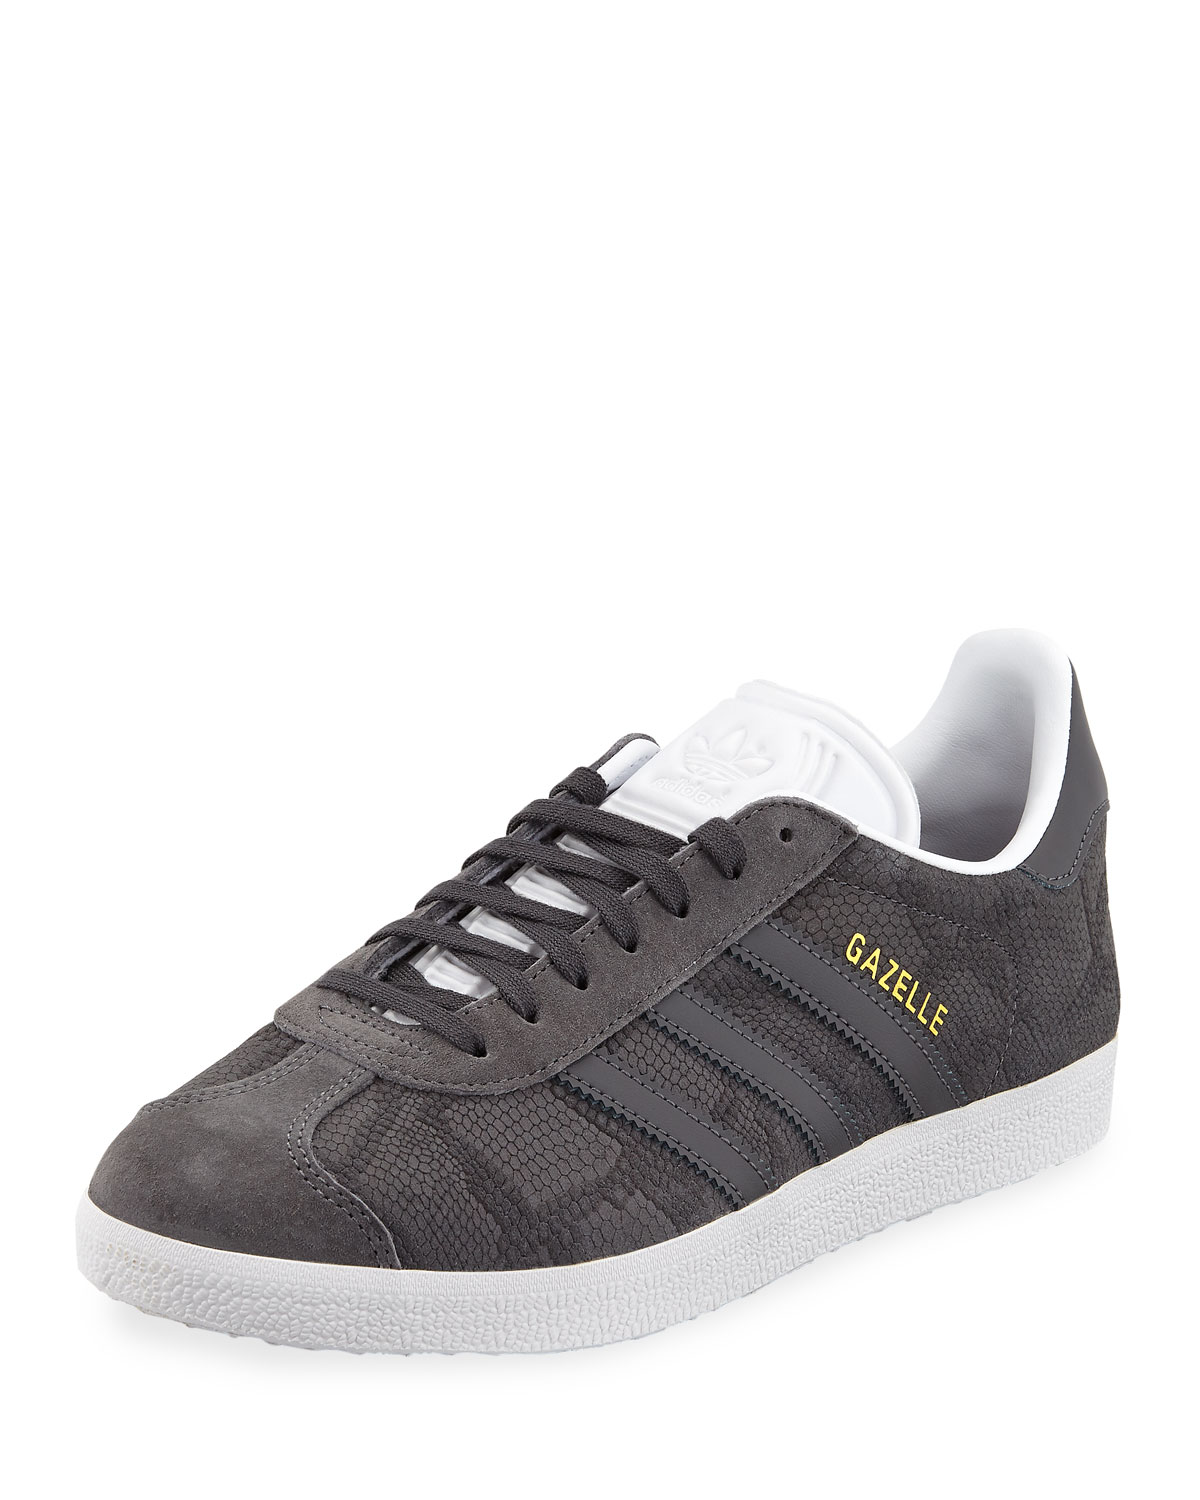 3005e150d144 Adidas Gazelle Leather Lace-Up Sneakers